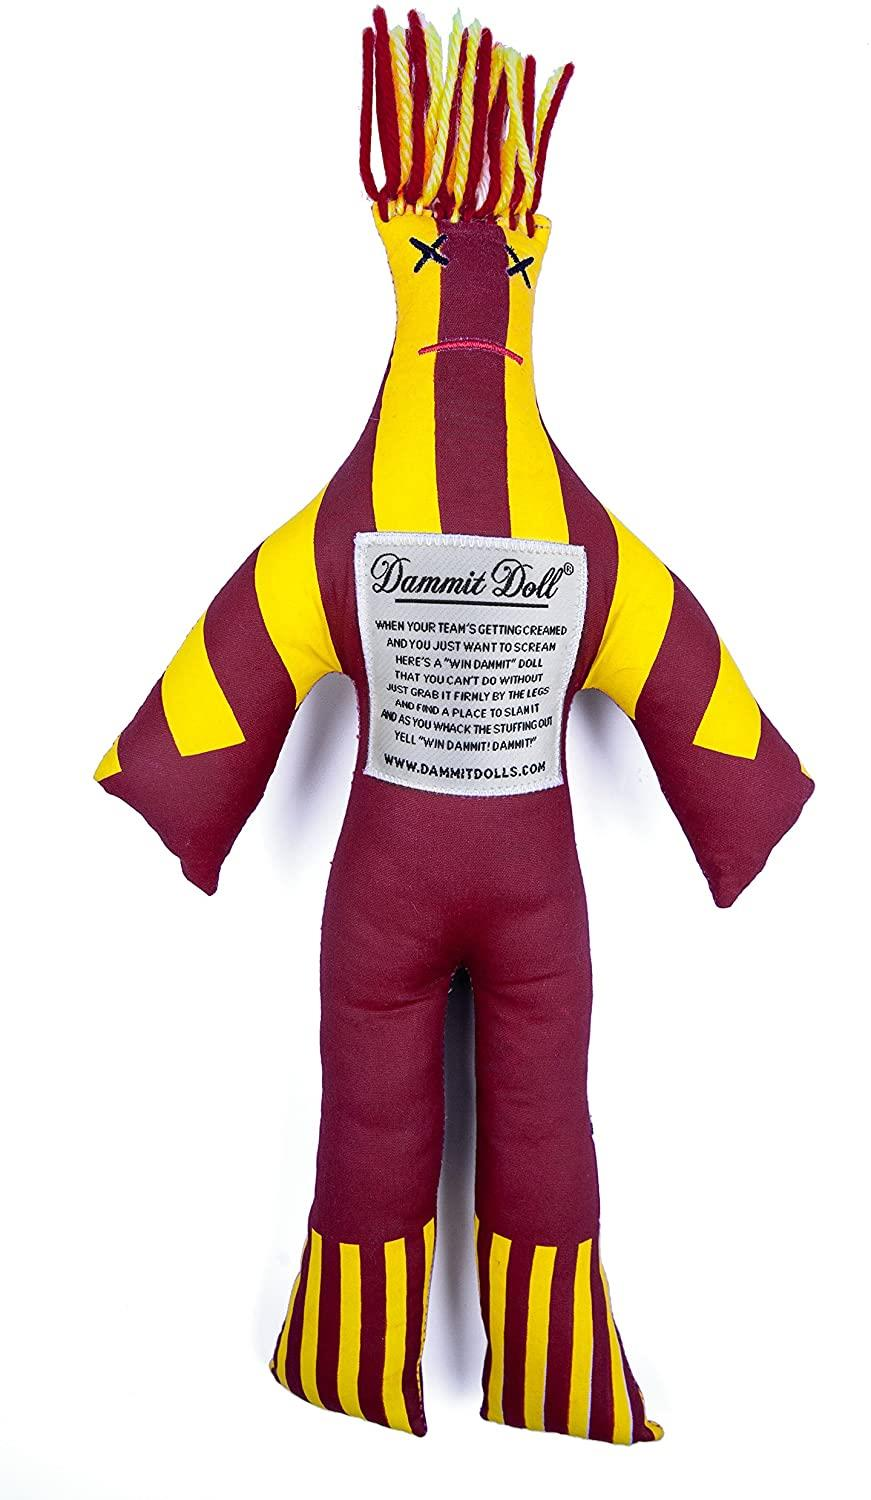 Iowa State Dammit Doll